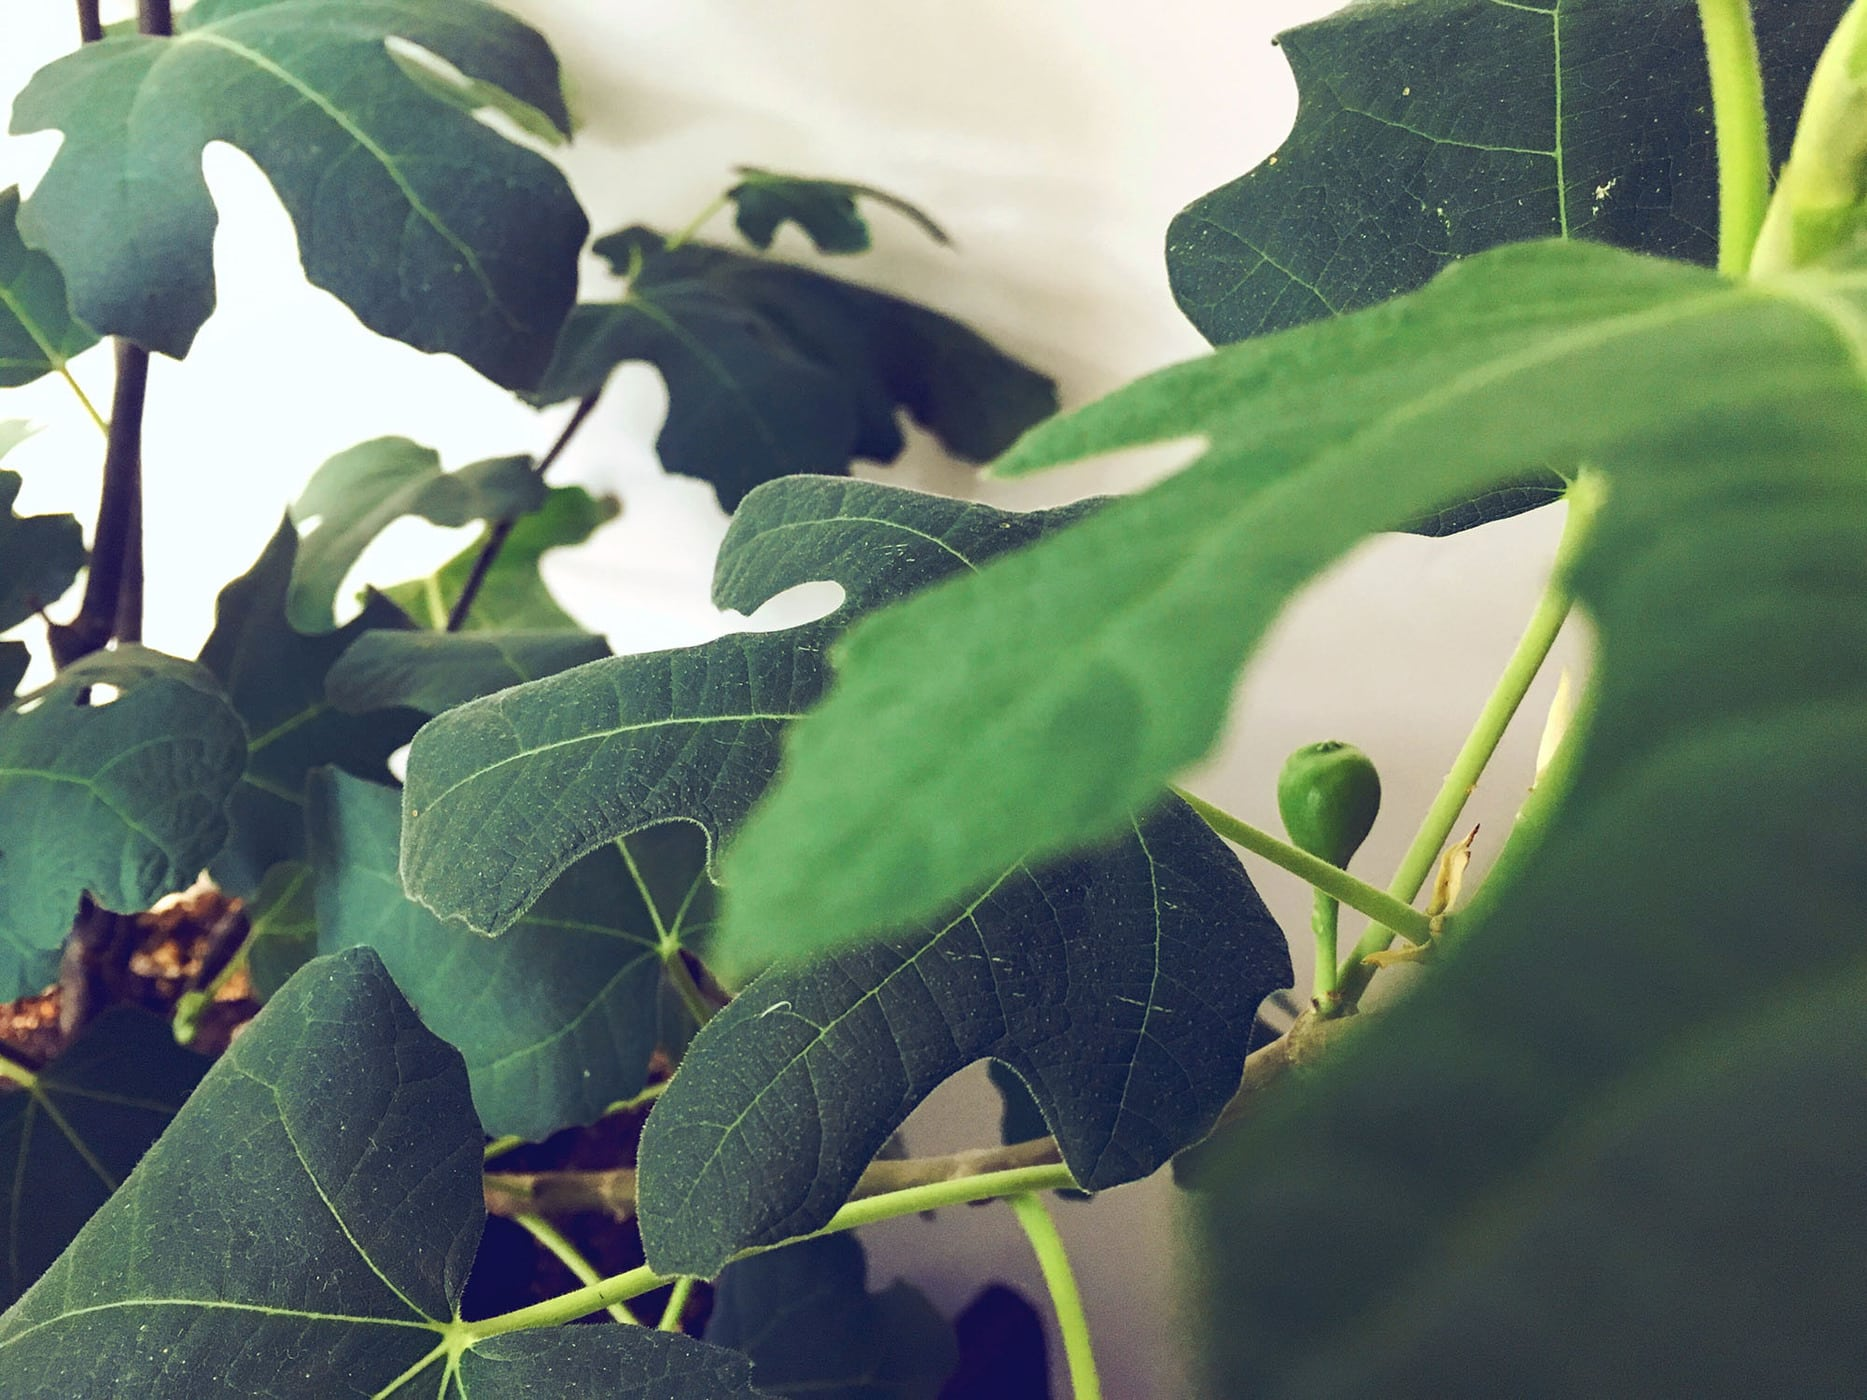 Growing a fig - Week 2